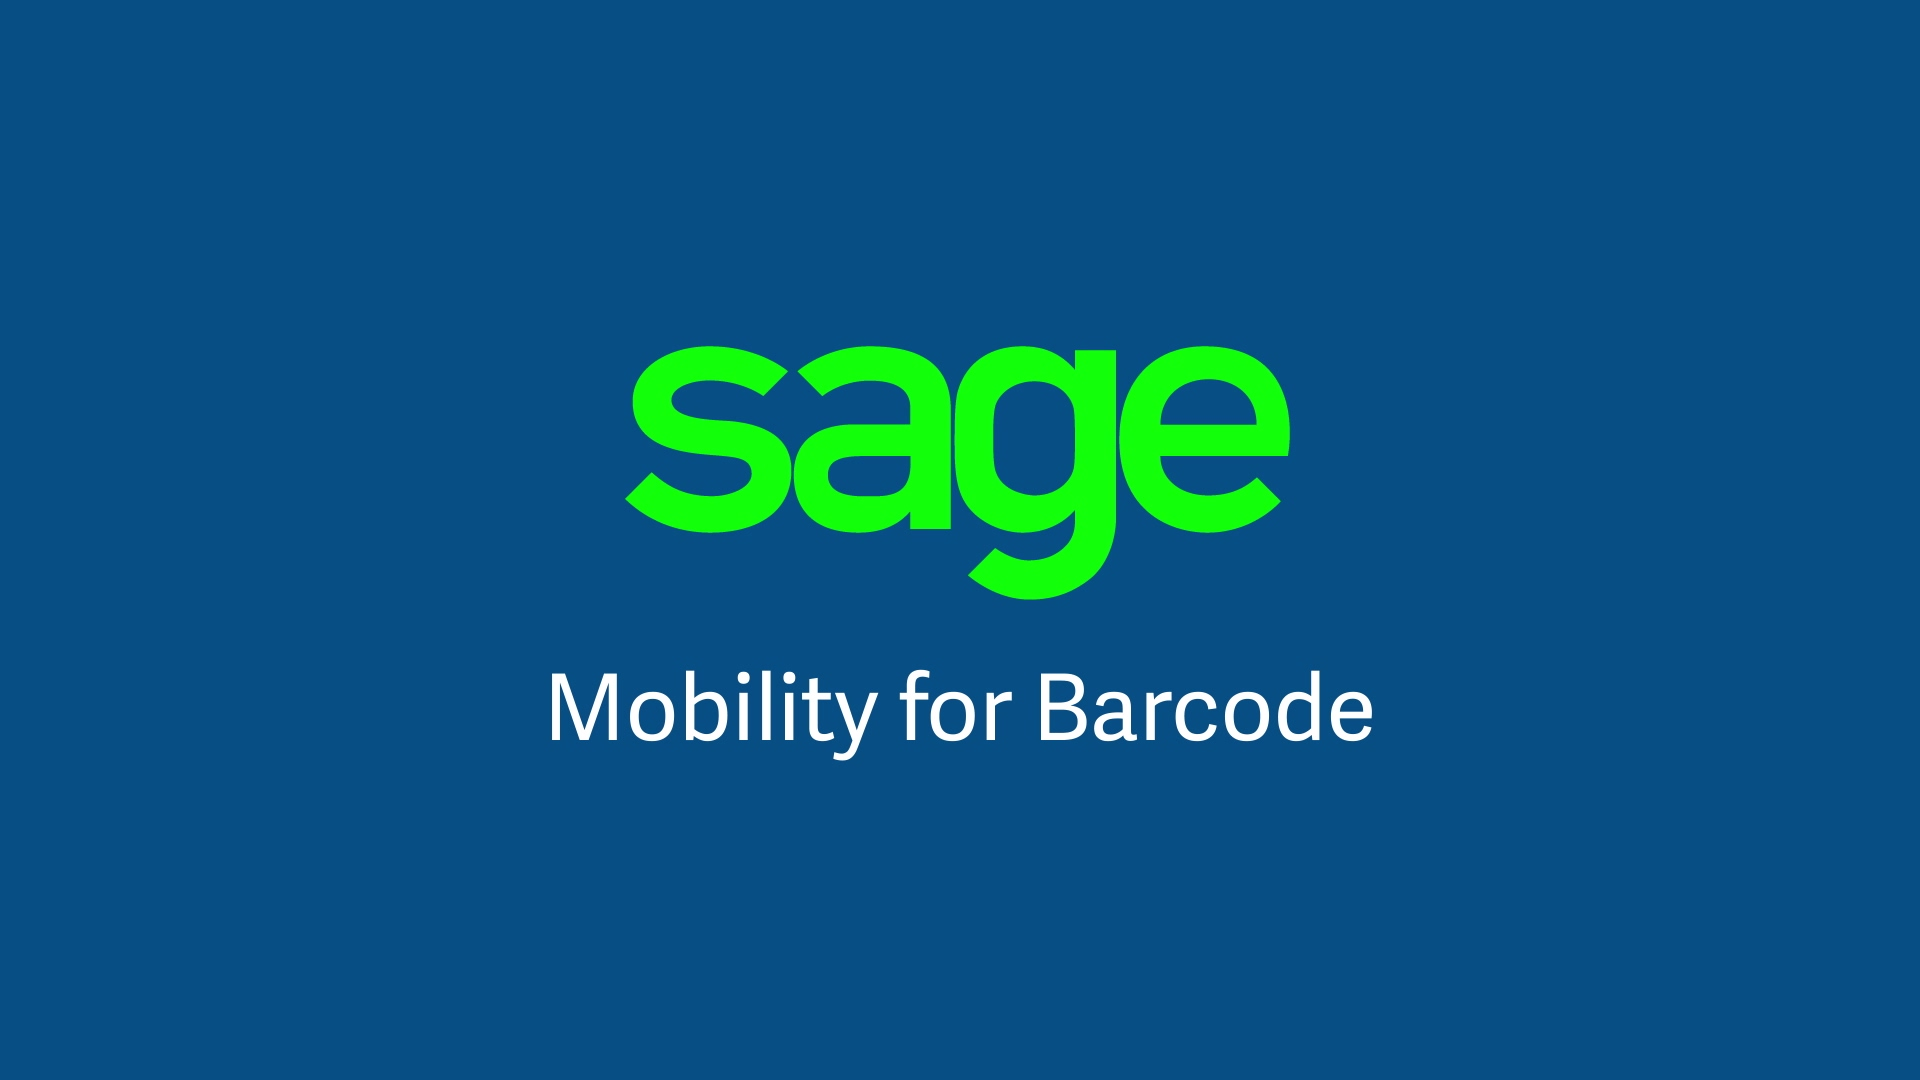 Sage Mobility for Barcode